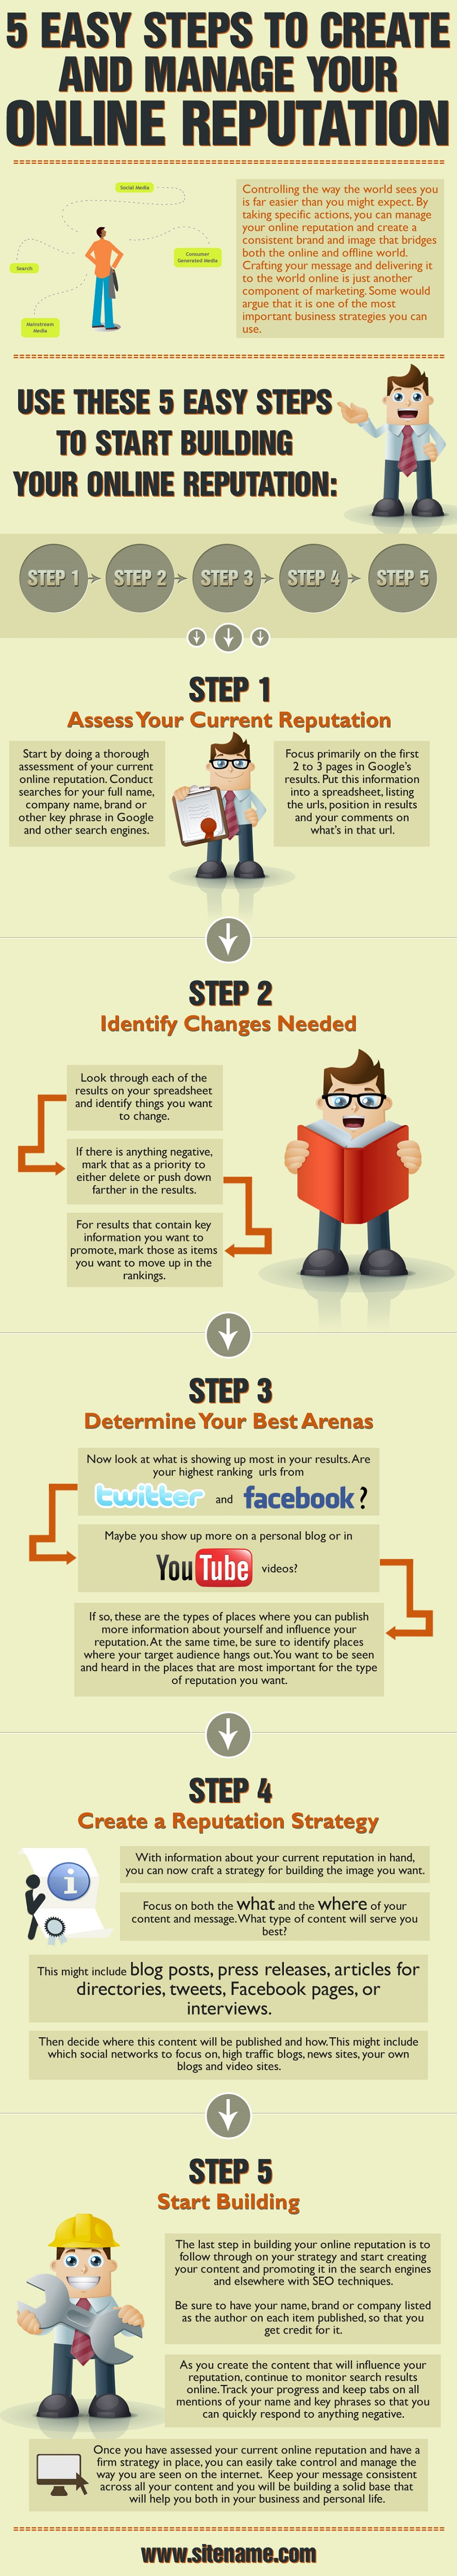 5 easy steps to start building online-reputation-management-infographic